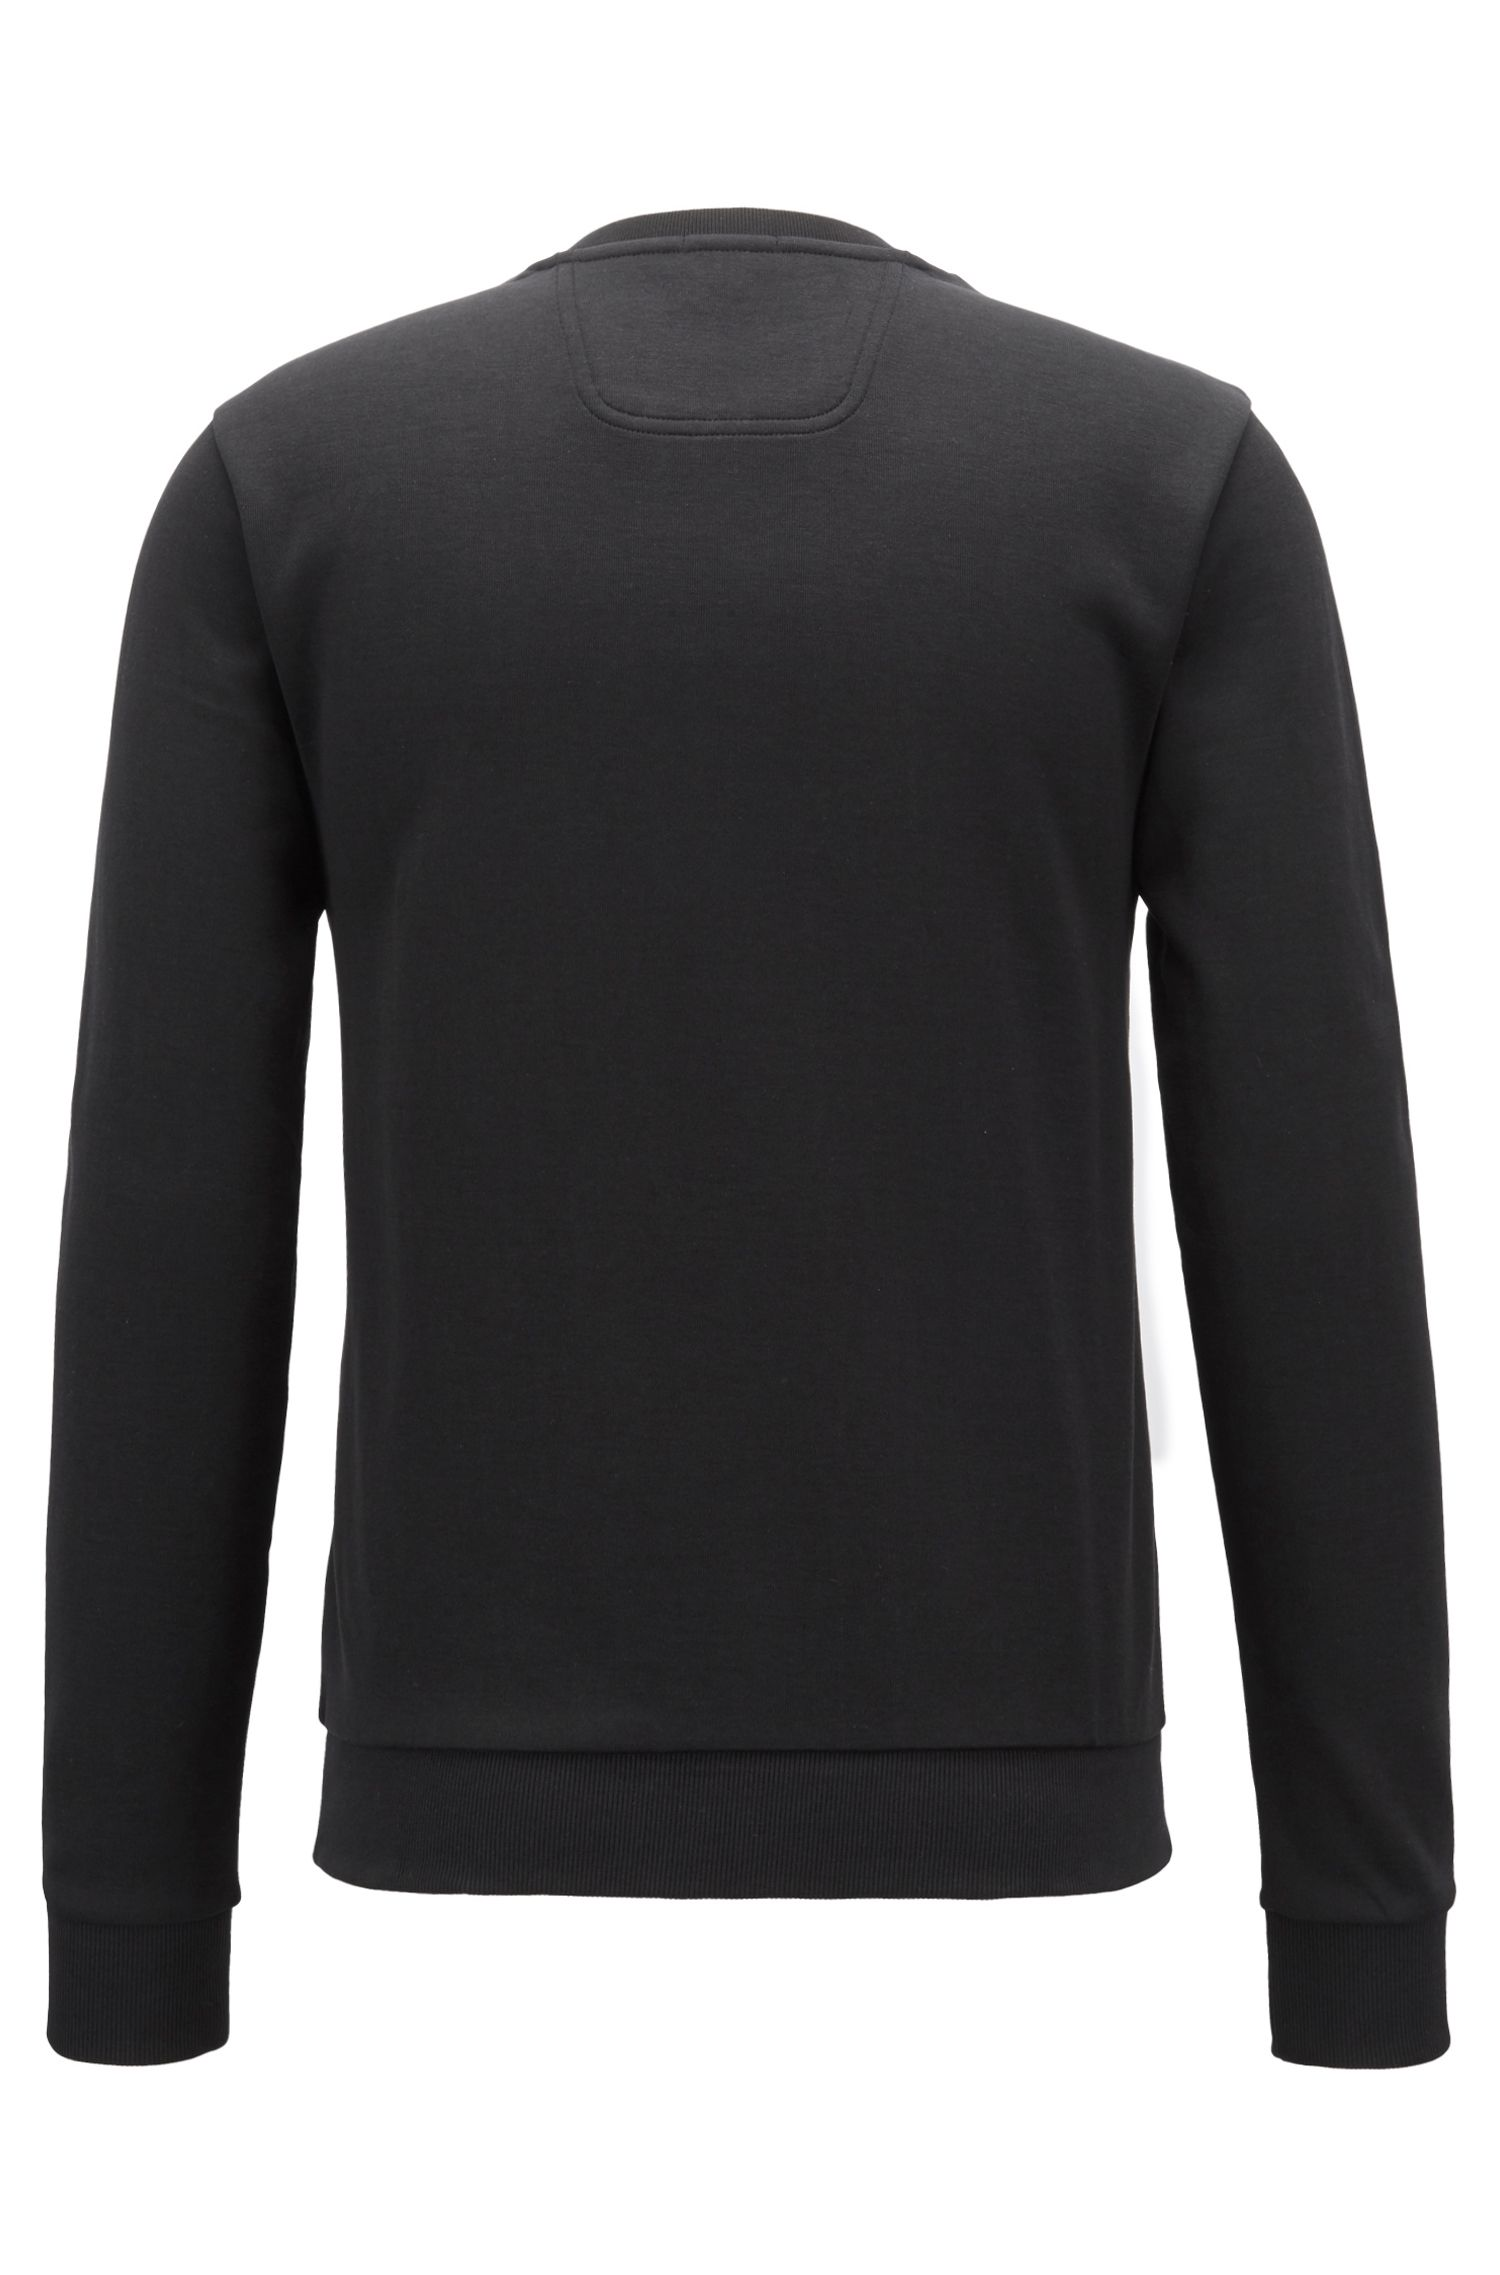 Slim-fit sweatshirt with tonal embossed logo, Black